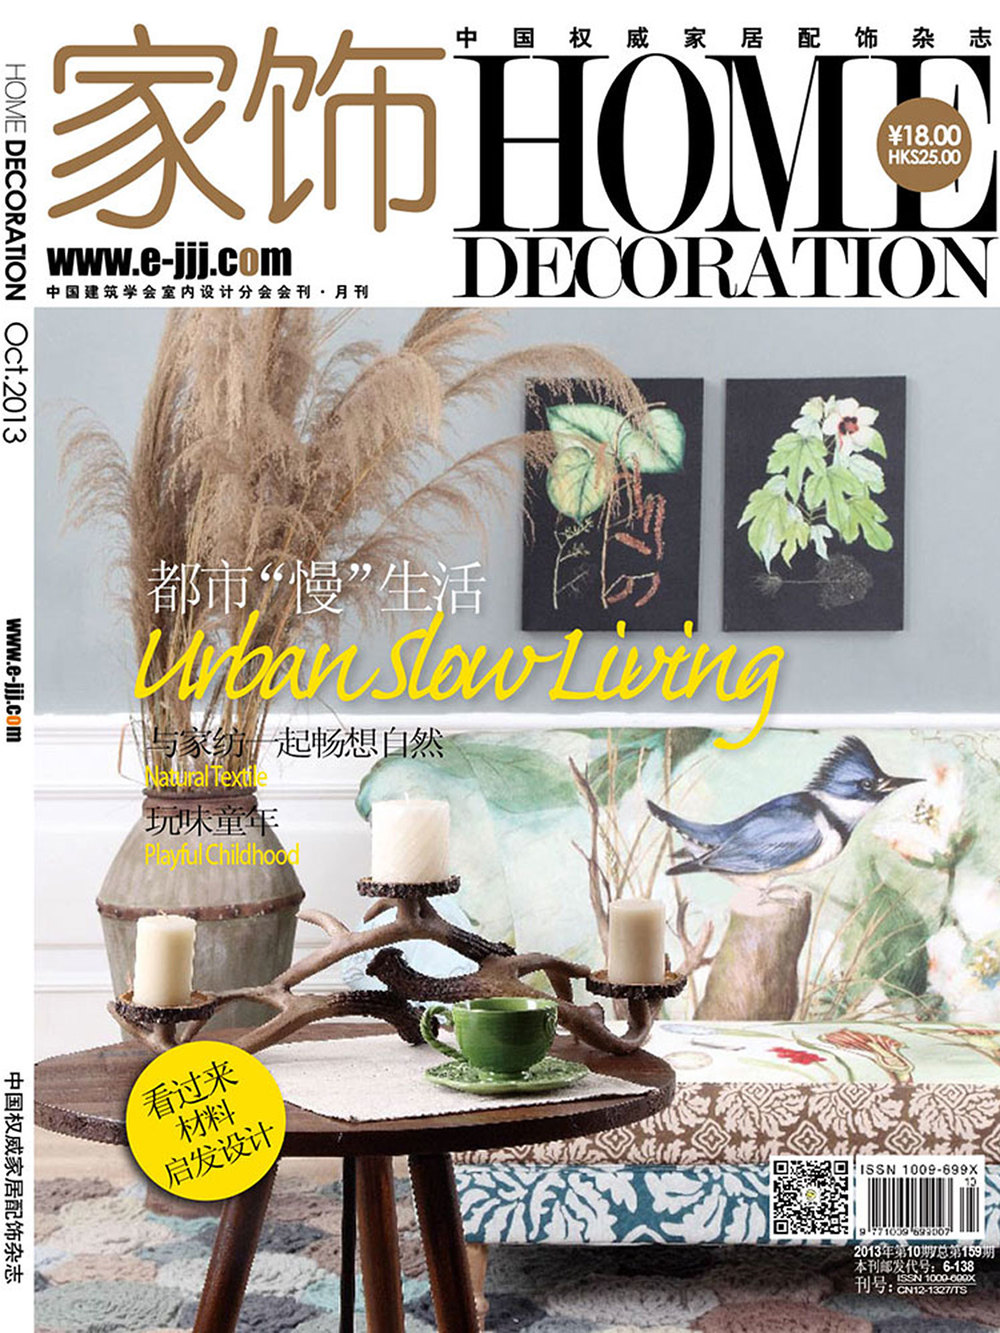 2013-home-decoration-octobre-cover.jpg